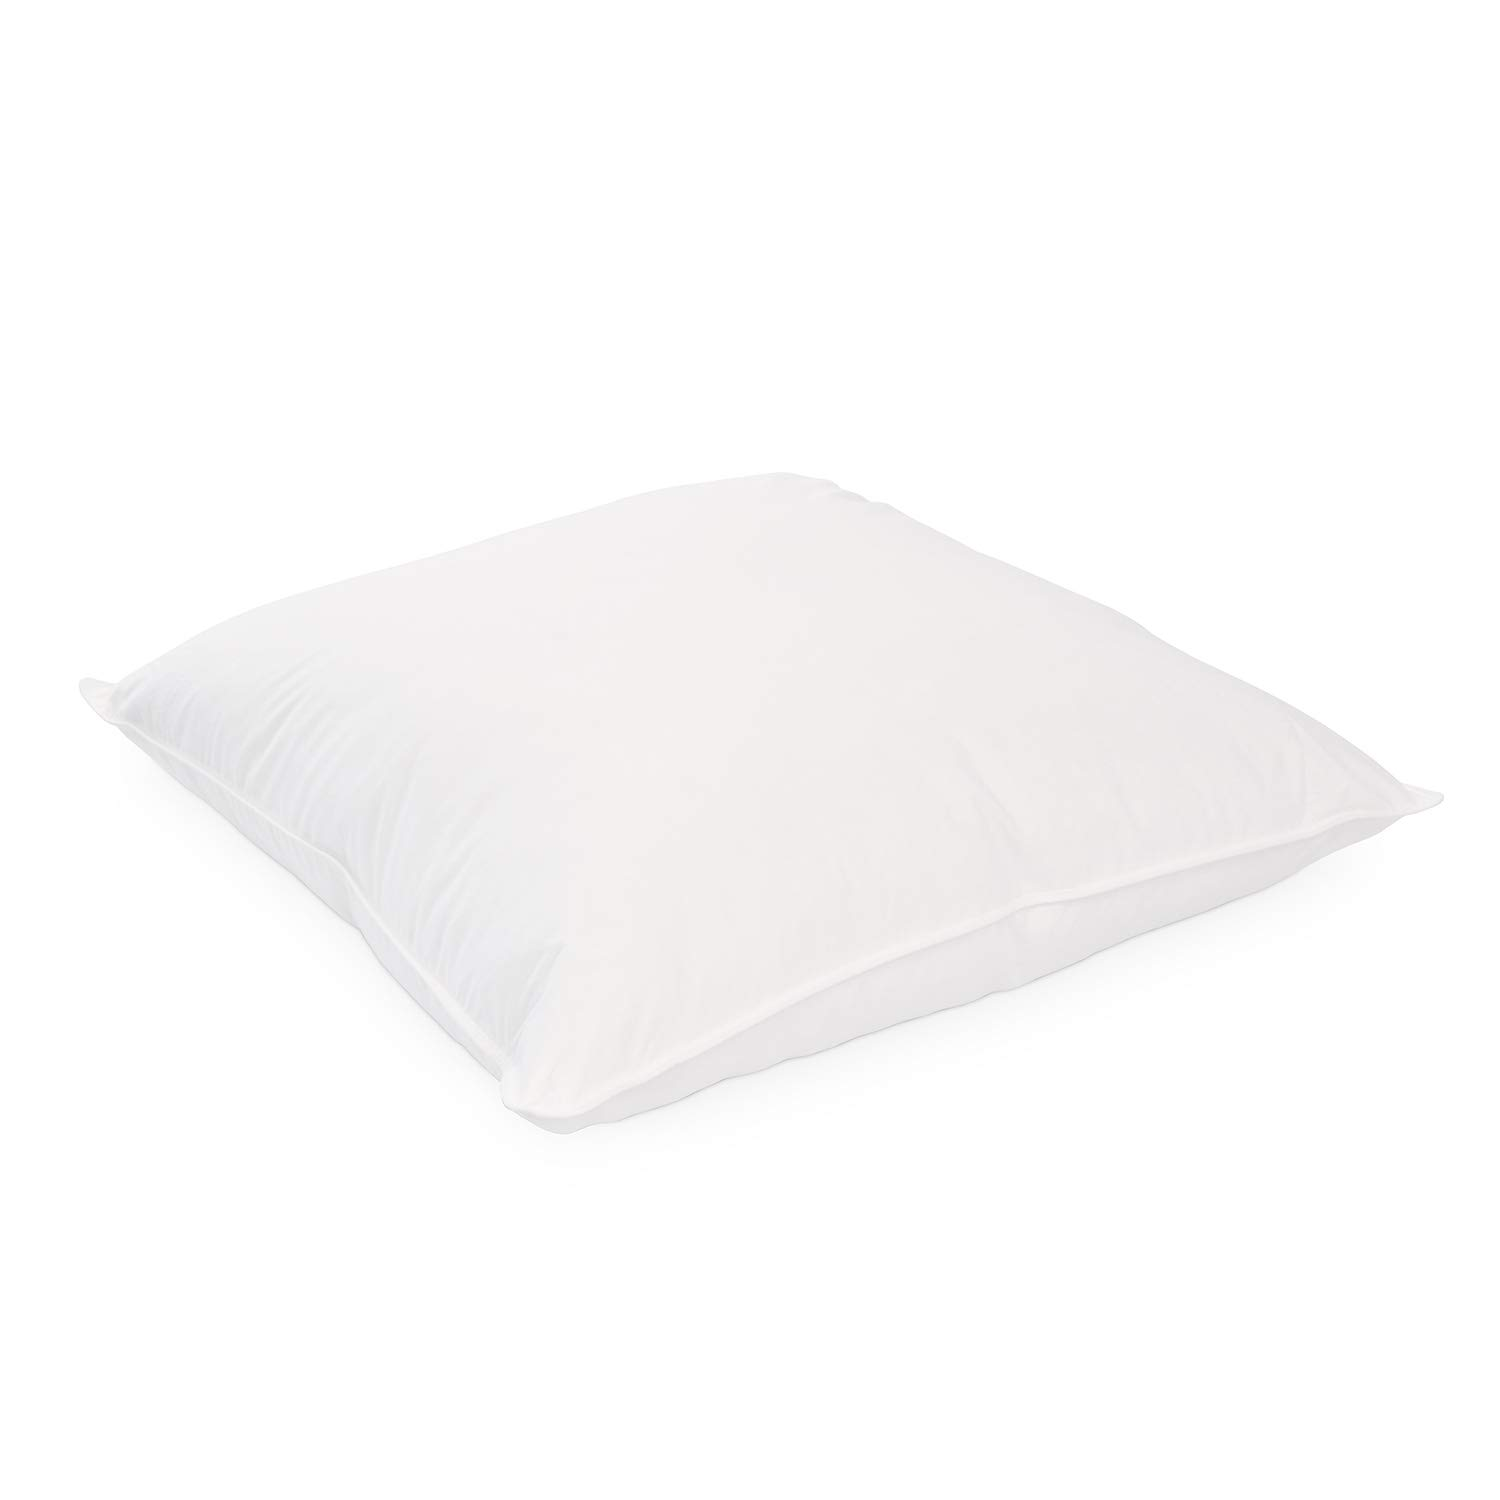 DOWNLITE Clearance Sale - Luxury Feather and Down Euro Pillow - Hypoallergenic Throw Pillow Insert - 26 Inch Euro Pillow - Assembled in The USA